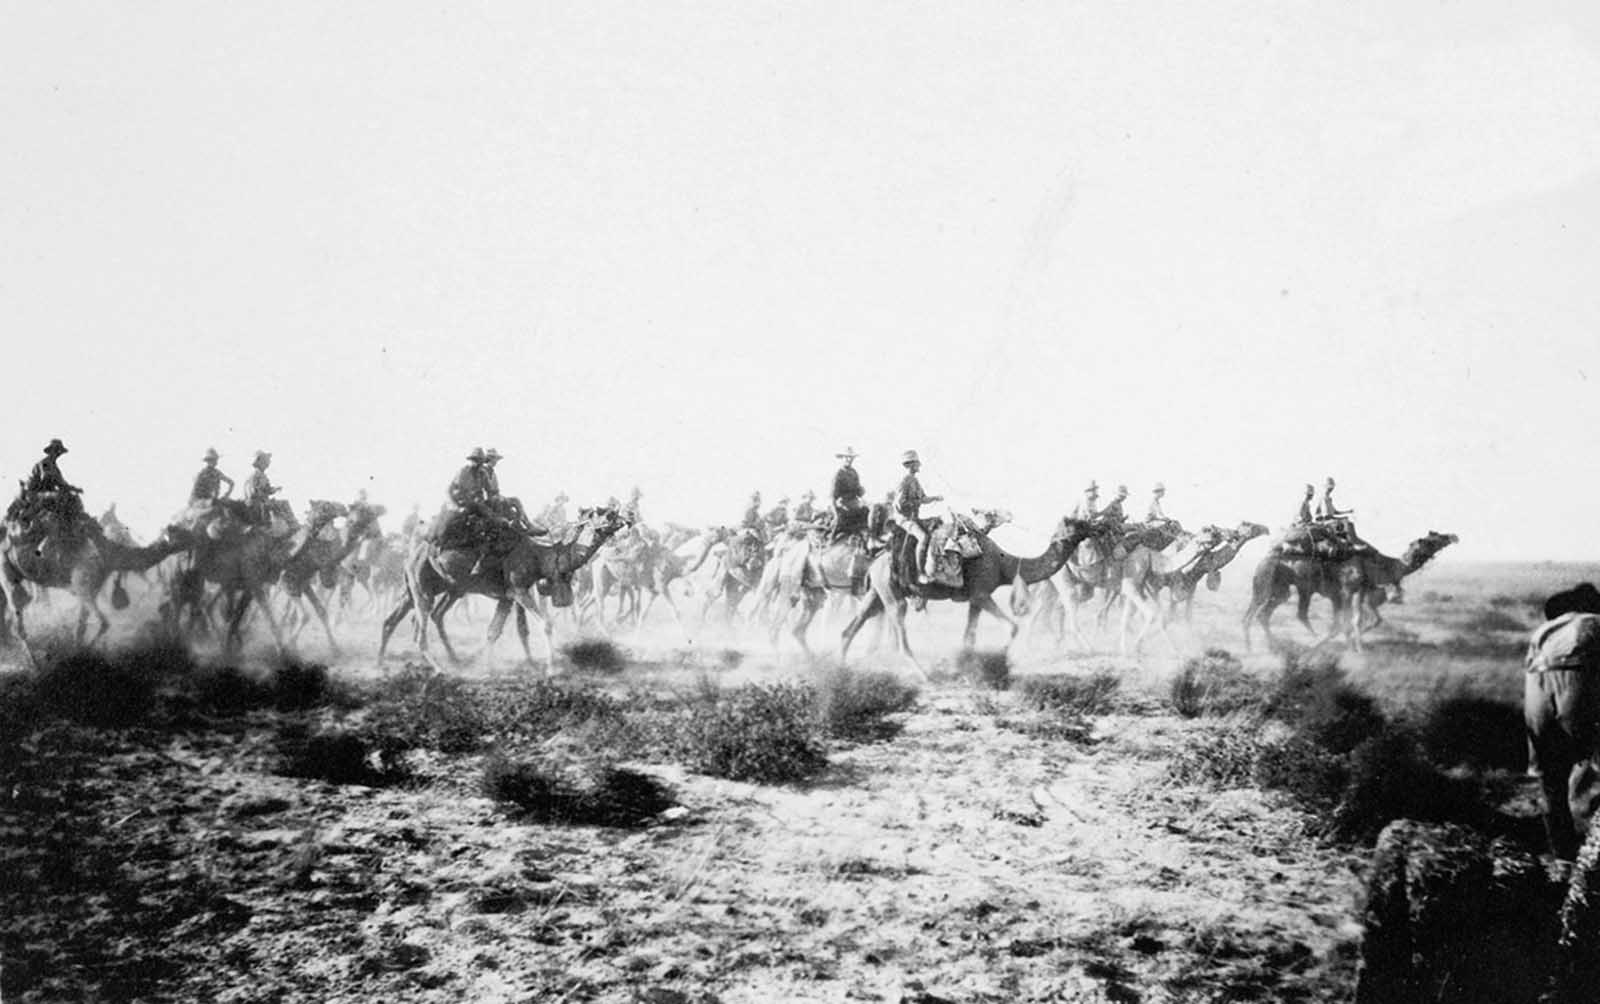 Australian Camel Corps going into action at Sharia near Beersheba, in December of 1917. The Colonel and many of these men were killed an hour or so afterward.